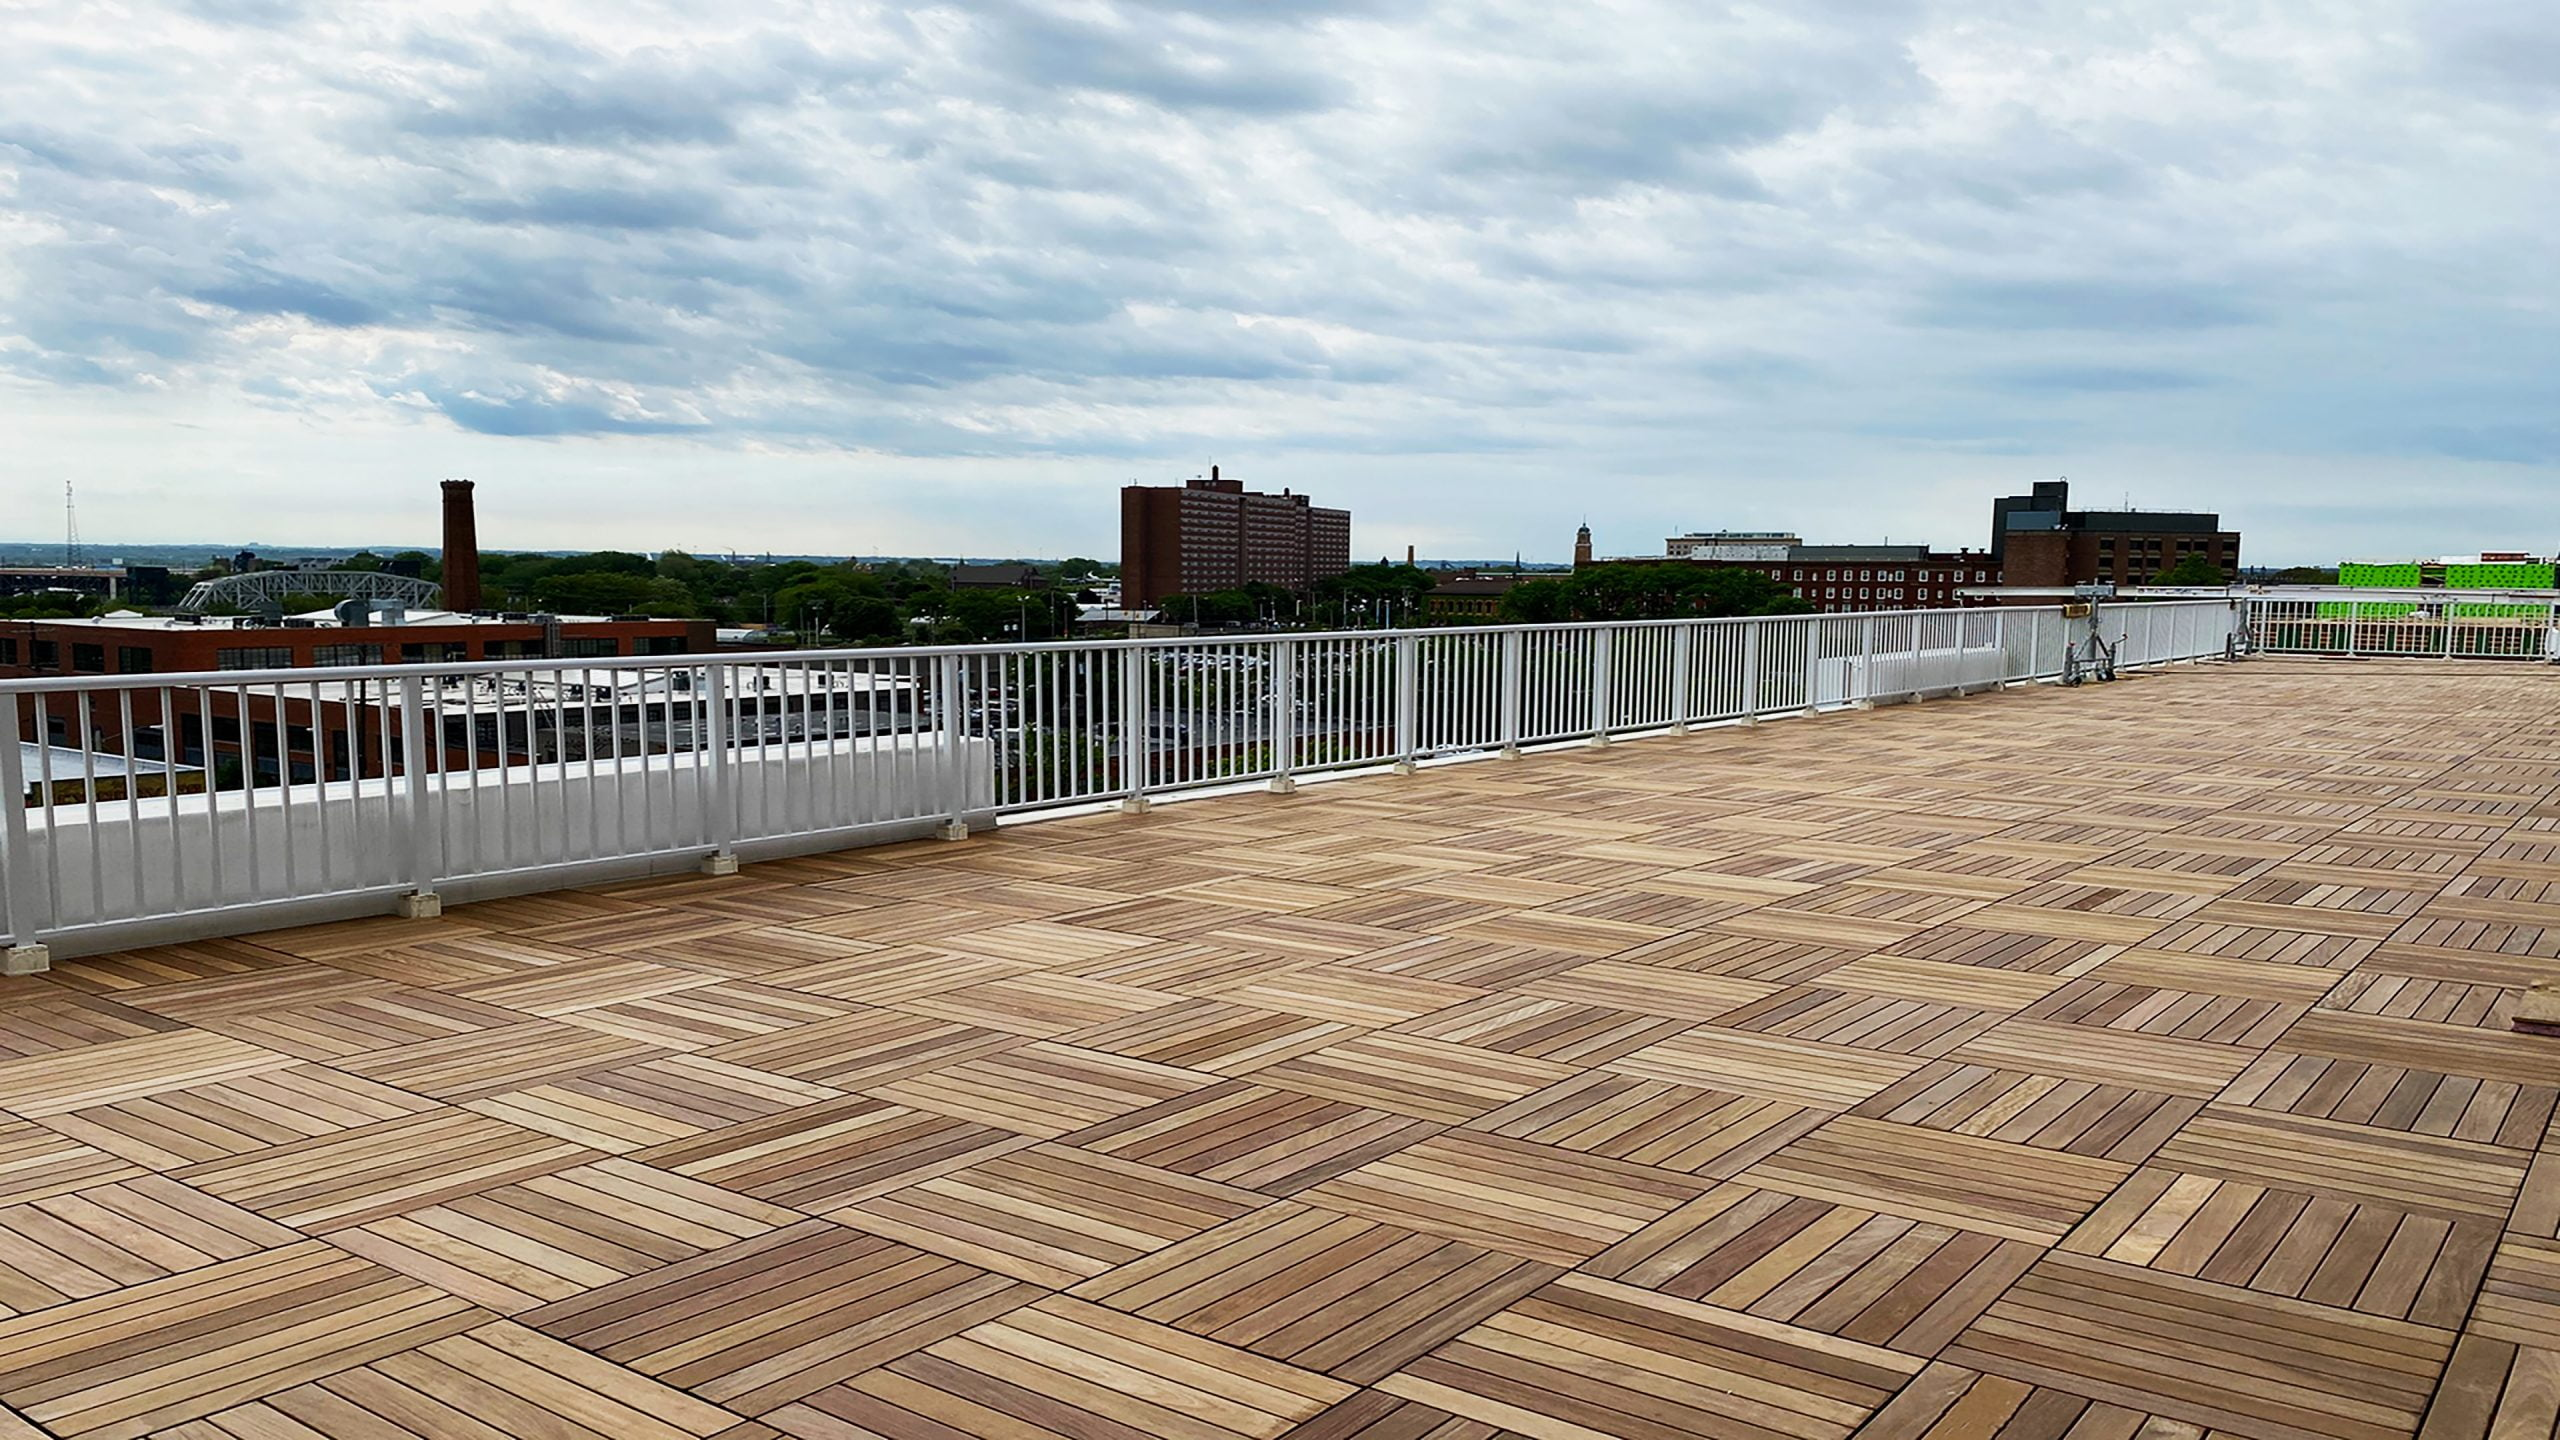 SkyWalk Ipe Deck Tile Patio at Church + State - Cleveland, OH